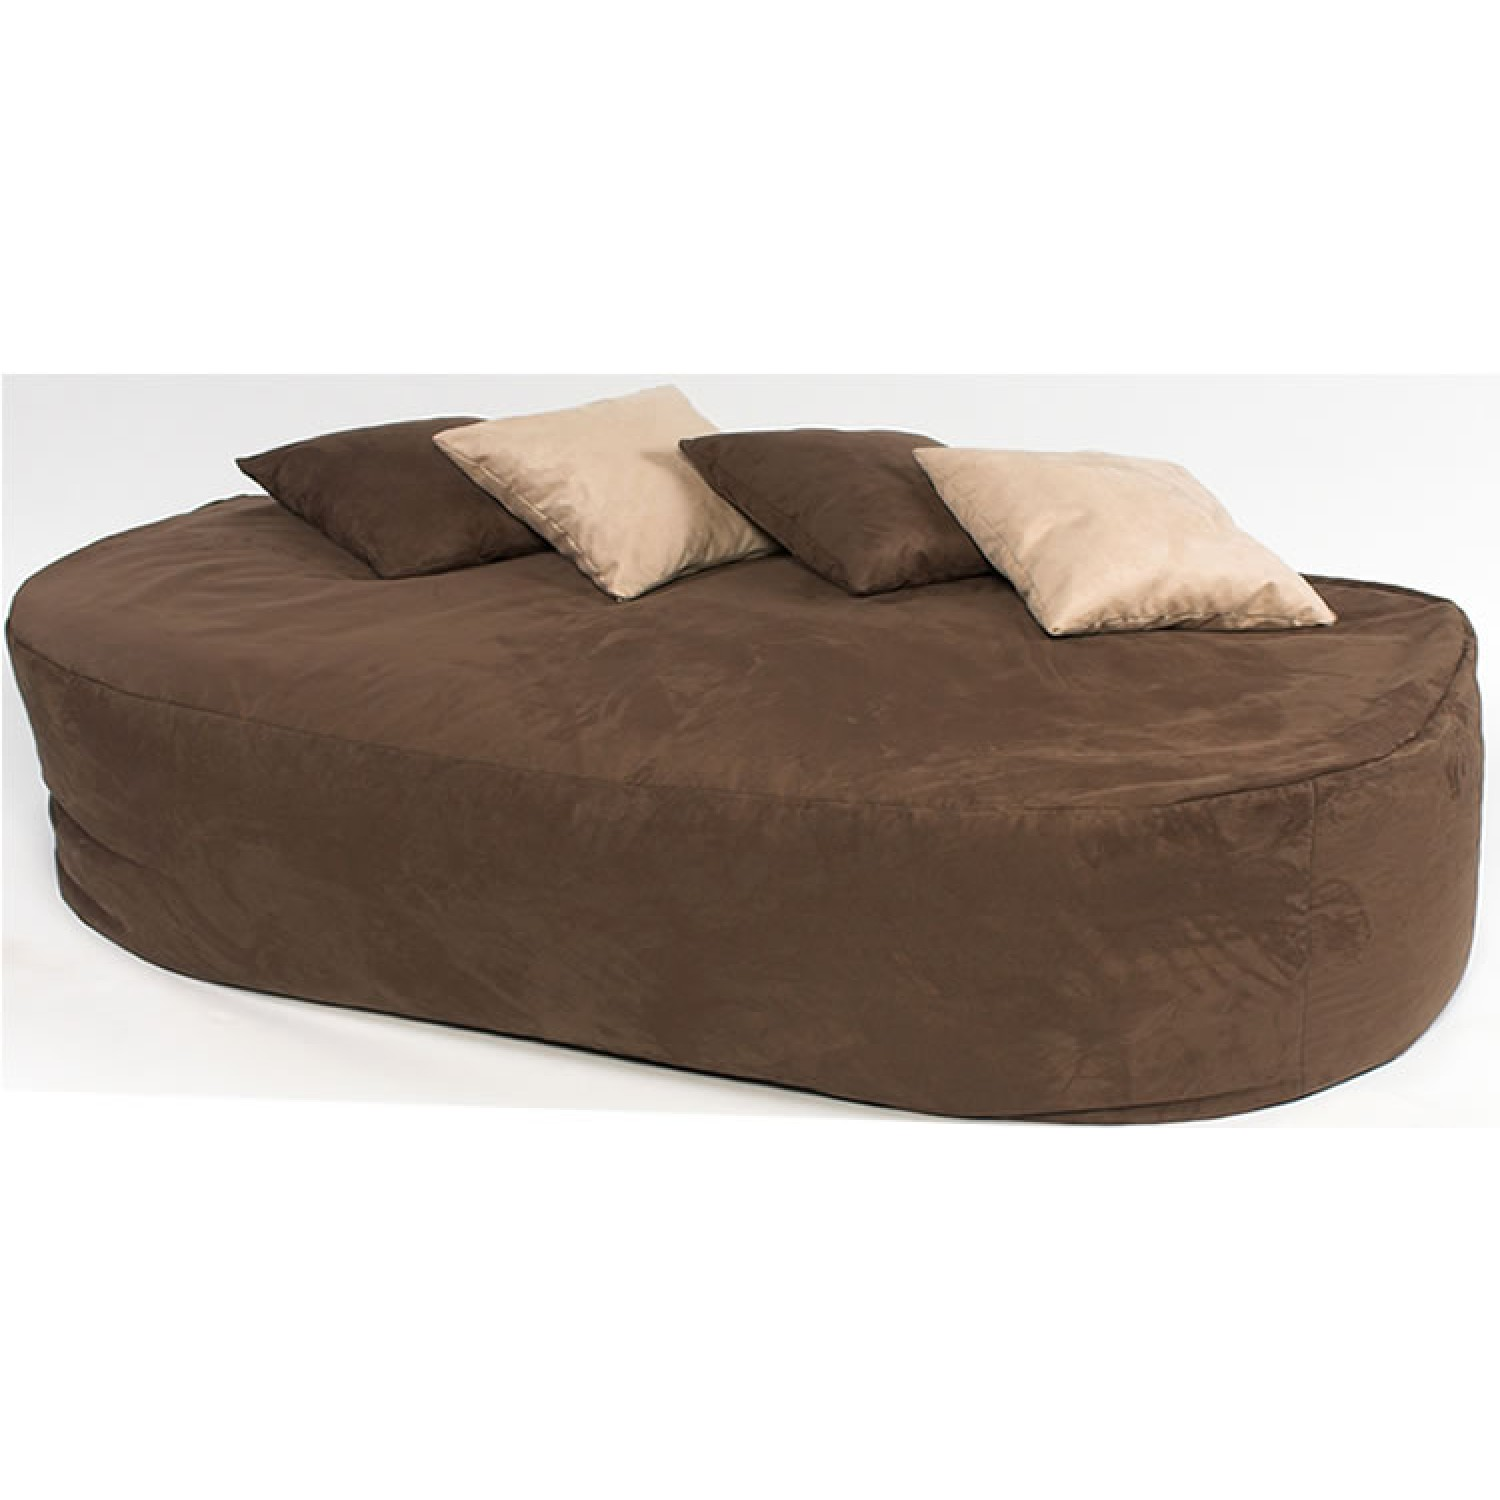 6 ft bed sofa faux suede for Suede couches for sale